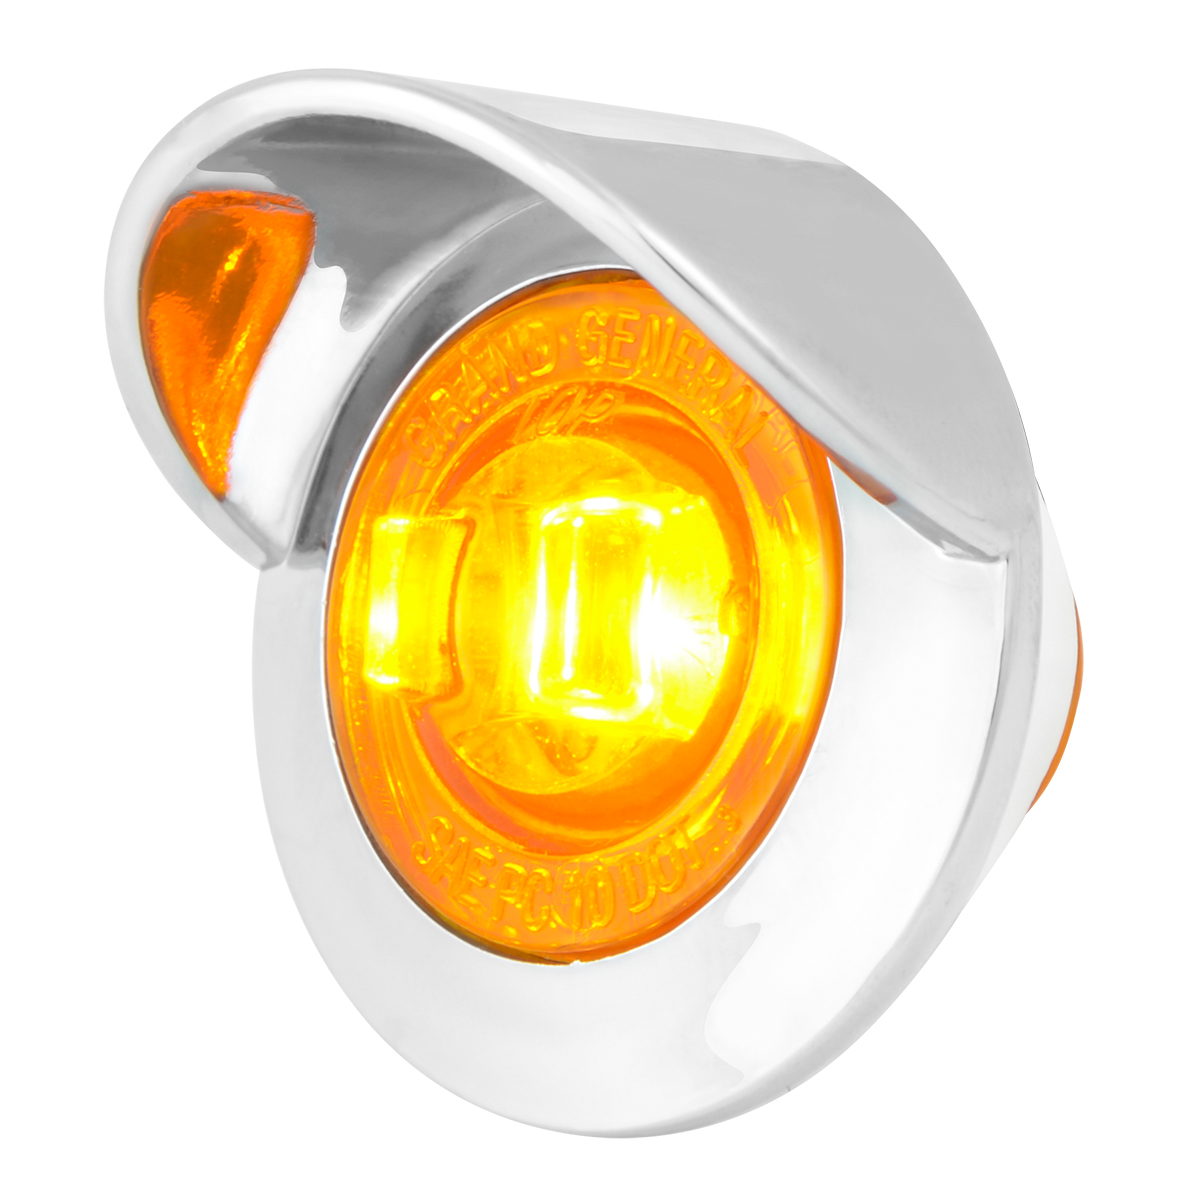 "75230 1-1/4"" Dia. Dual Function LED Light with Chrome Plastic Bezel w/ Visor and Nut"